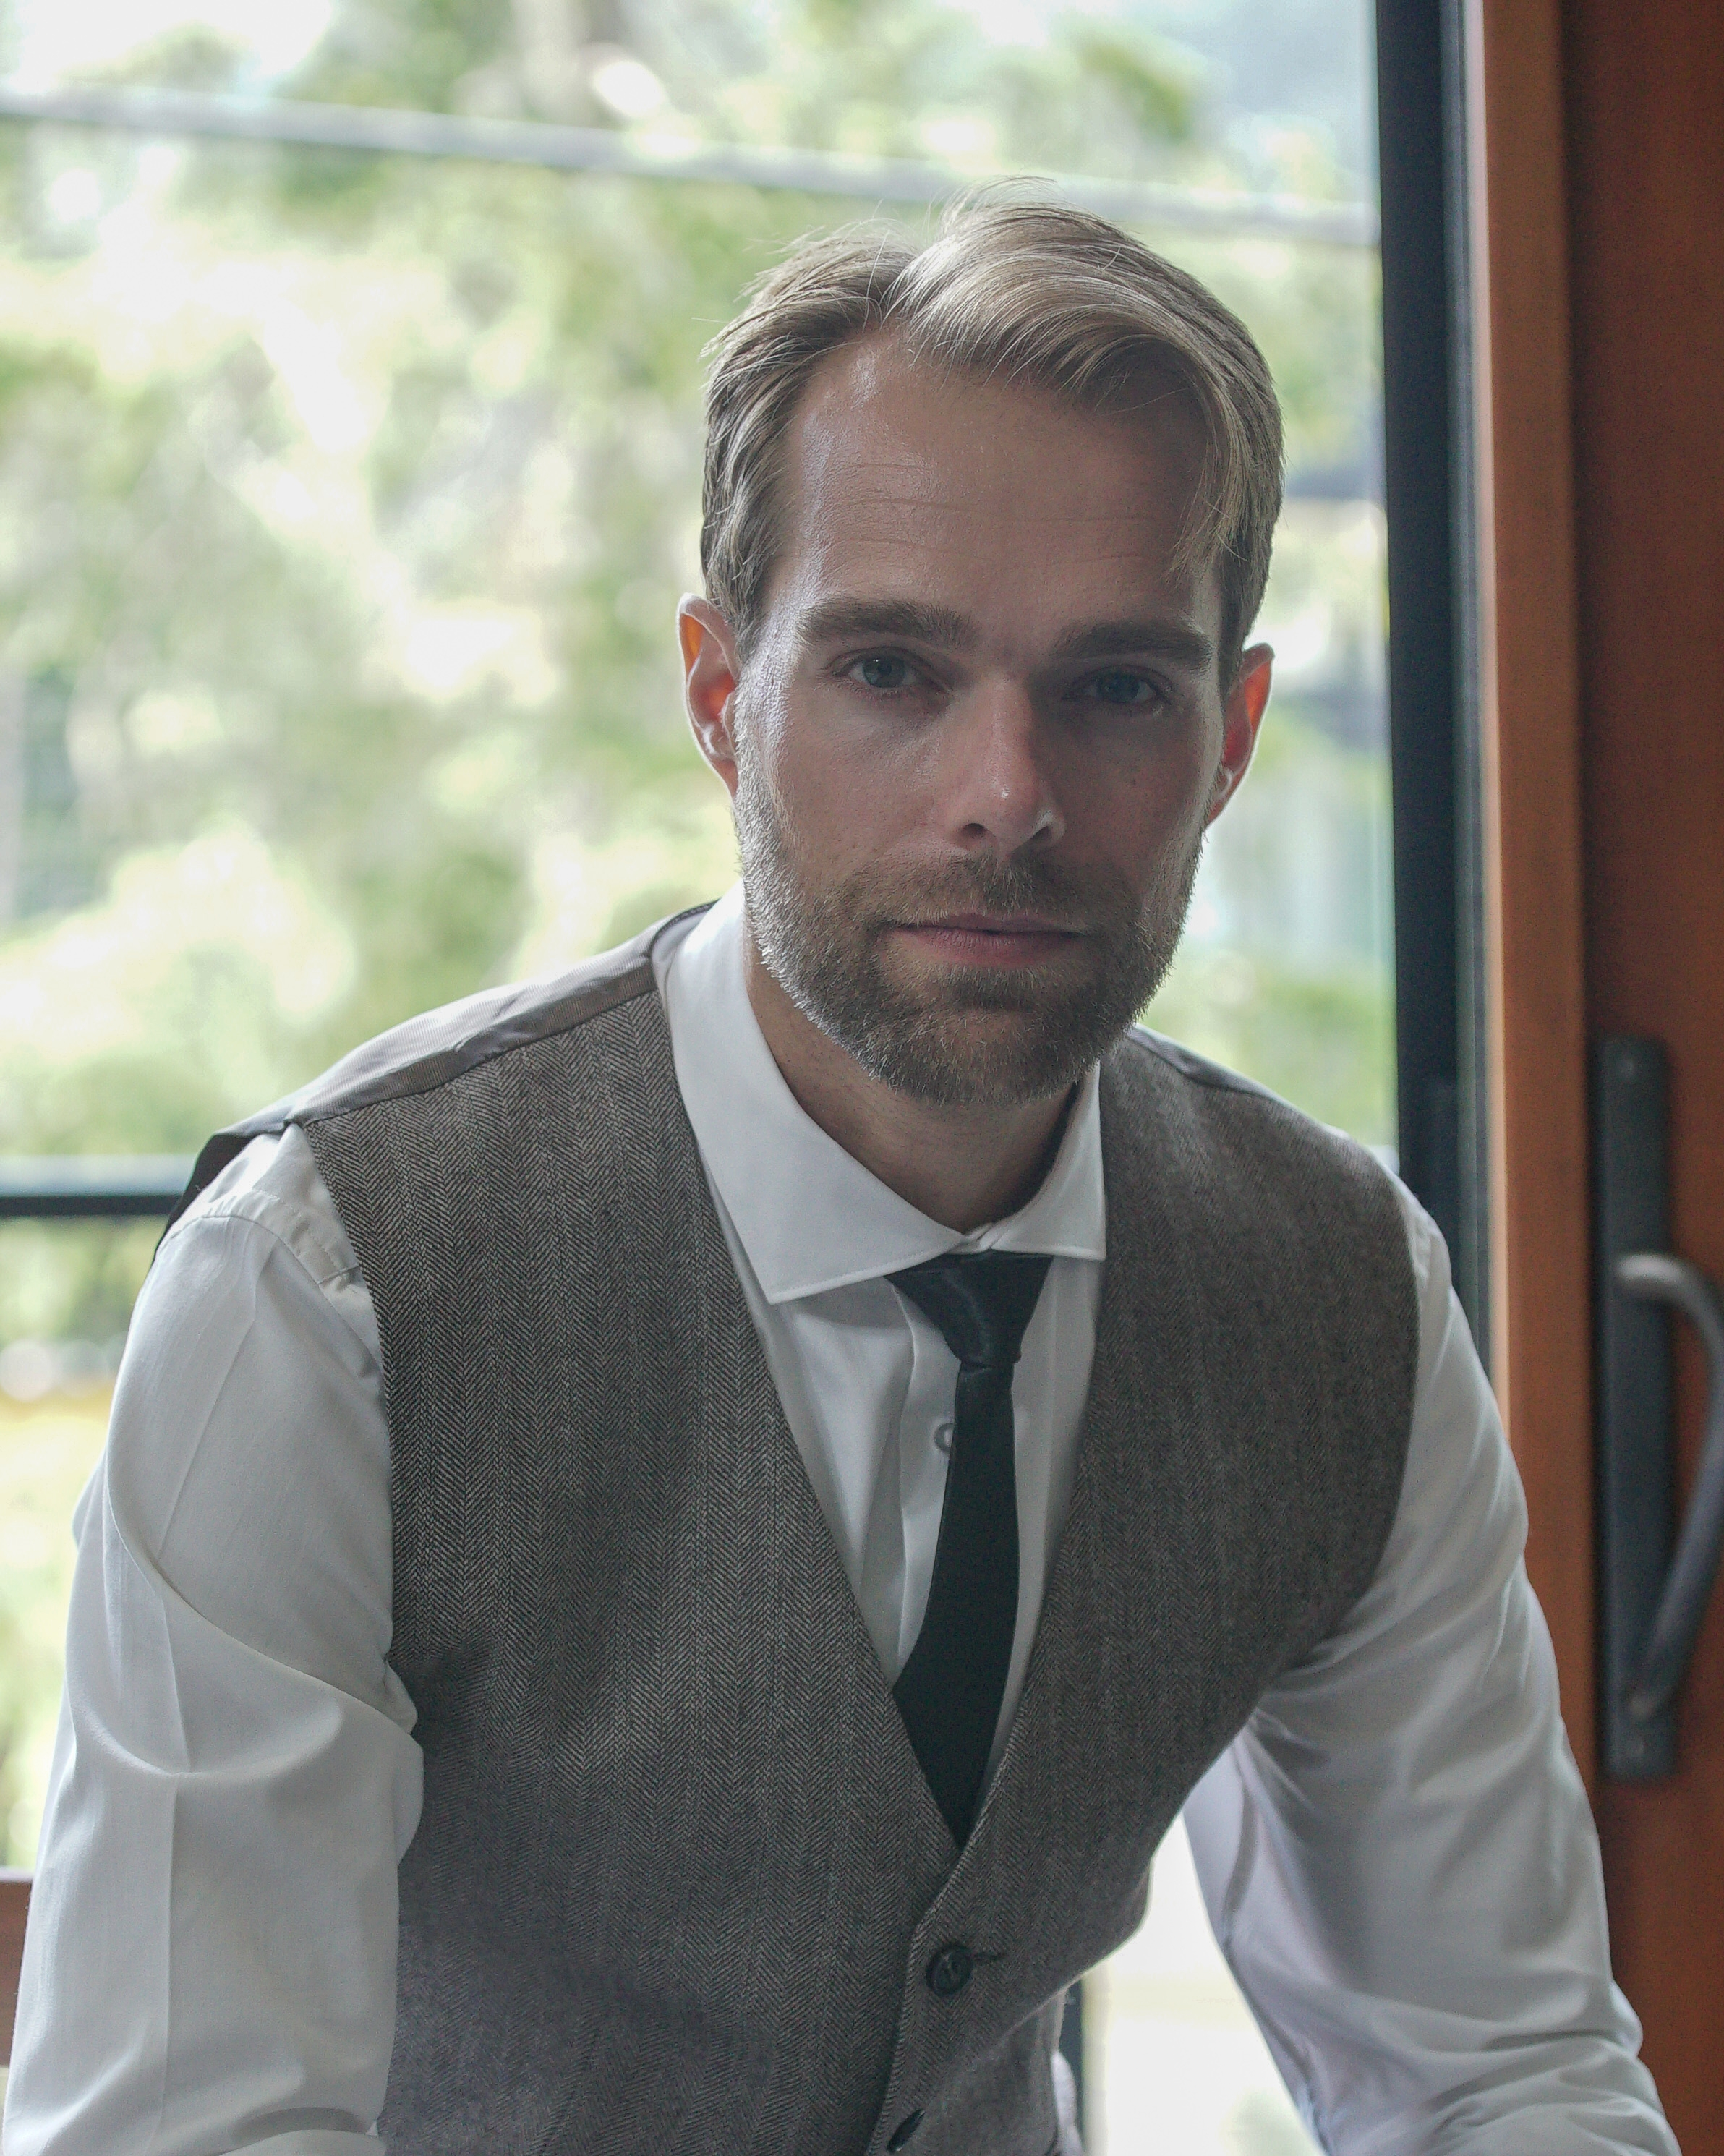 Edward Dangerfield - Edward is trained in:Nervous system health,Chinese massage & pressure points,Breathwork,Nerve flossing,Qi gong,Biofield energy healing,Yoga andMeditation.He constantly studies modern approaches to anatomy, physiology, neuroscience and developmental patterns